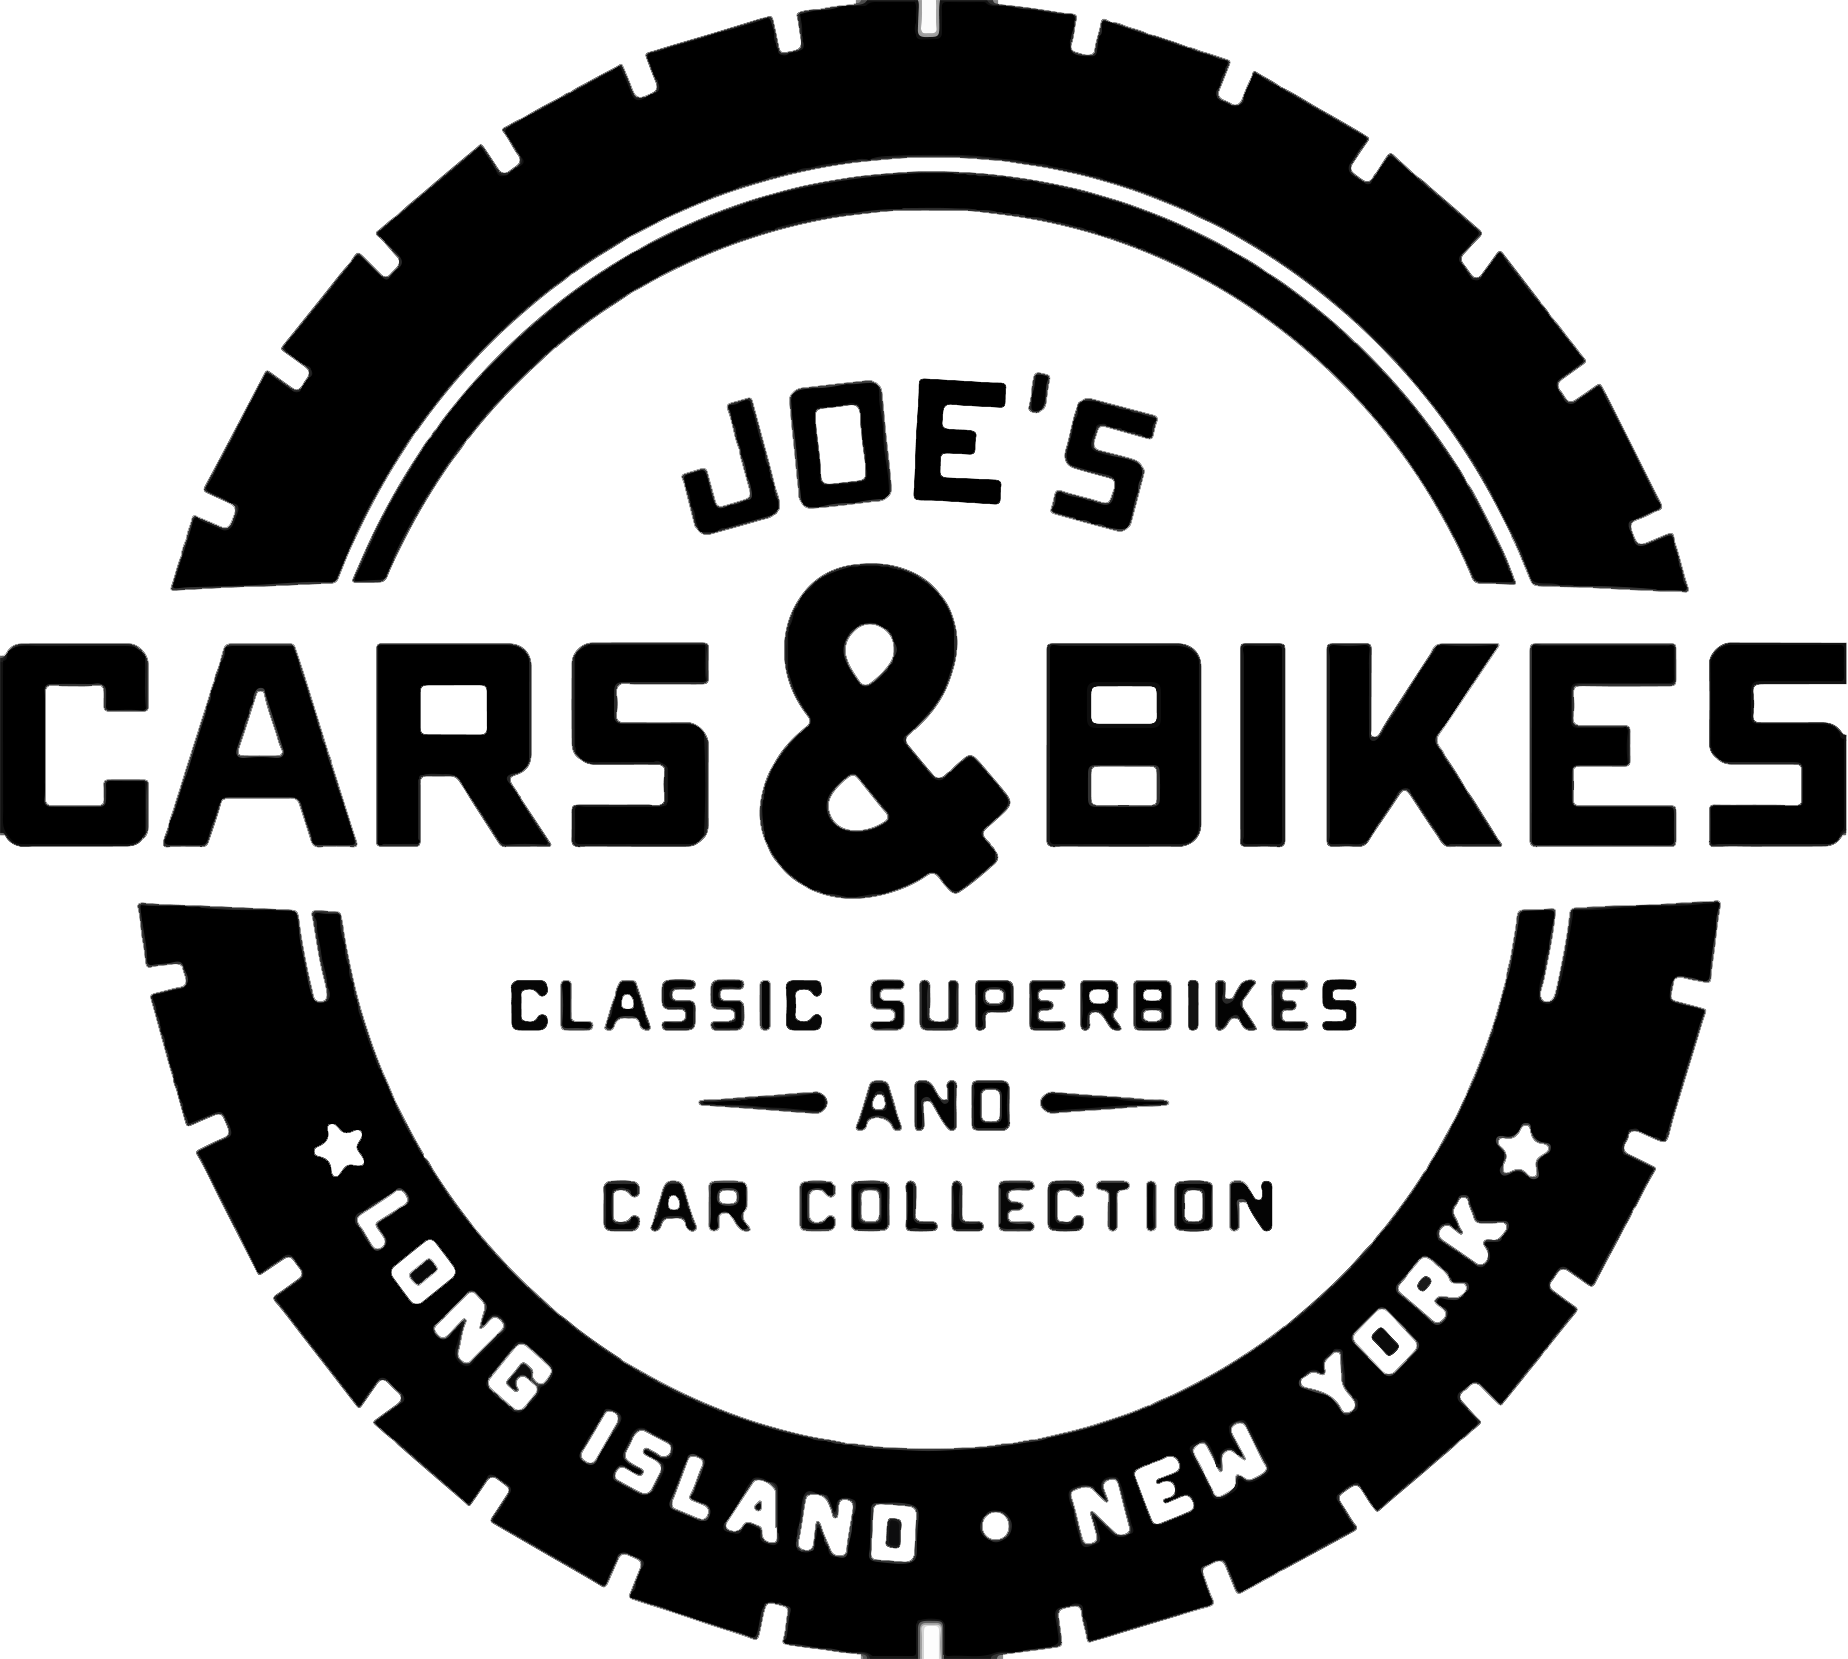 Joe's Cars and Bikes